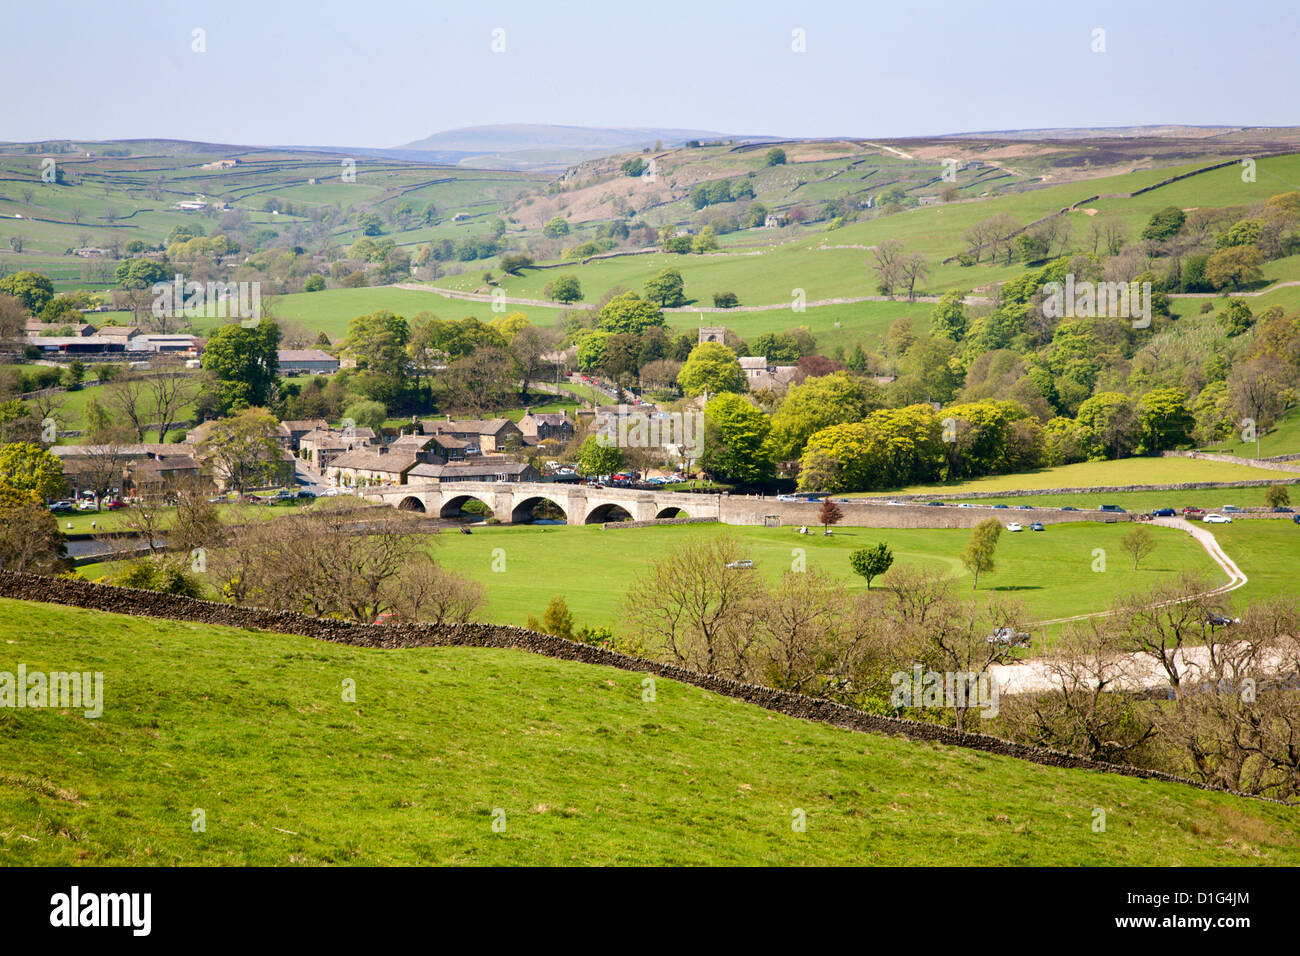 Village of Burnsall in Wharfedale, Yorkshire Dales, Yorkshire, England, United Kingdom, Europe - Stock Image